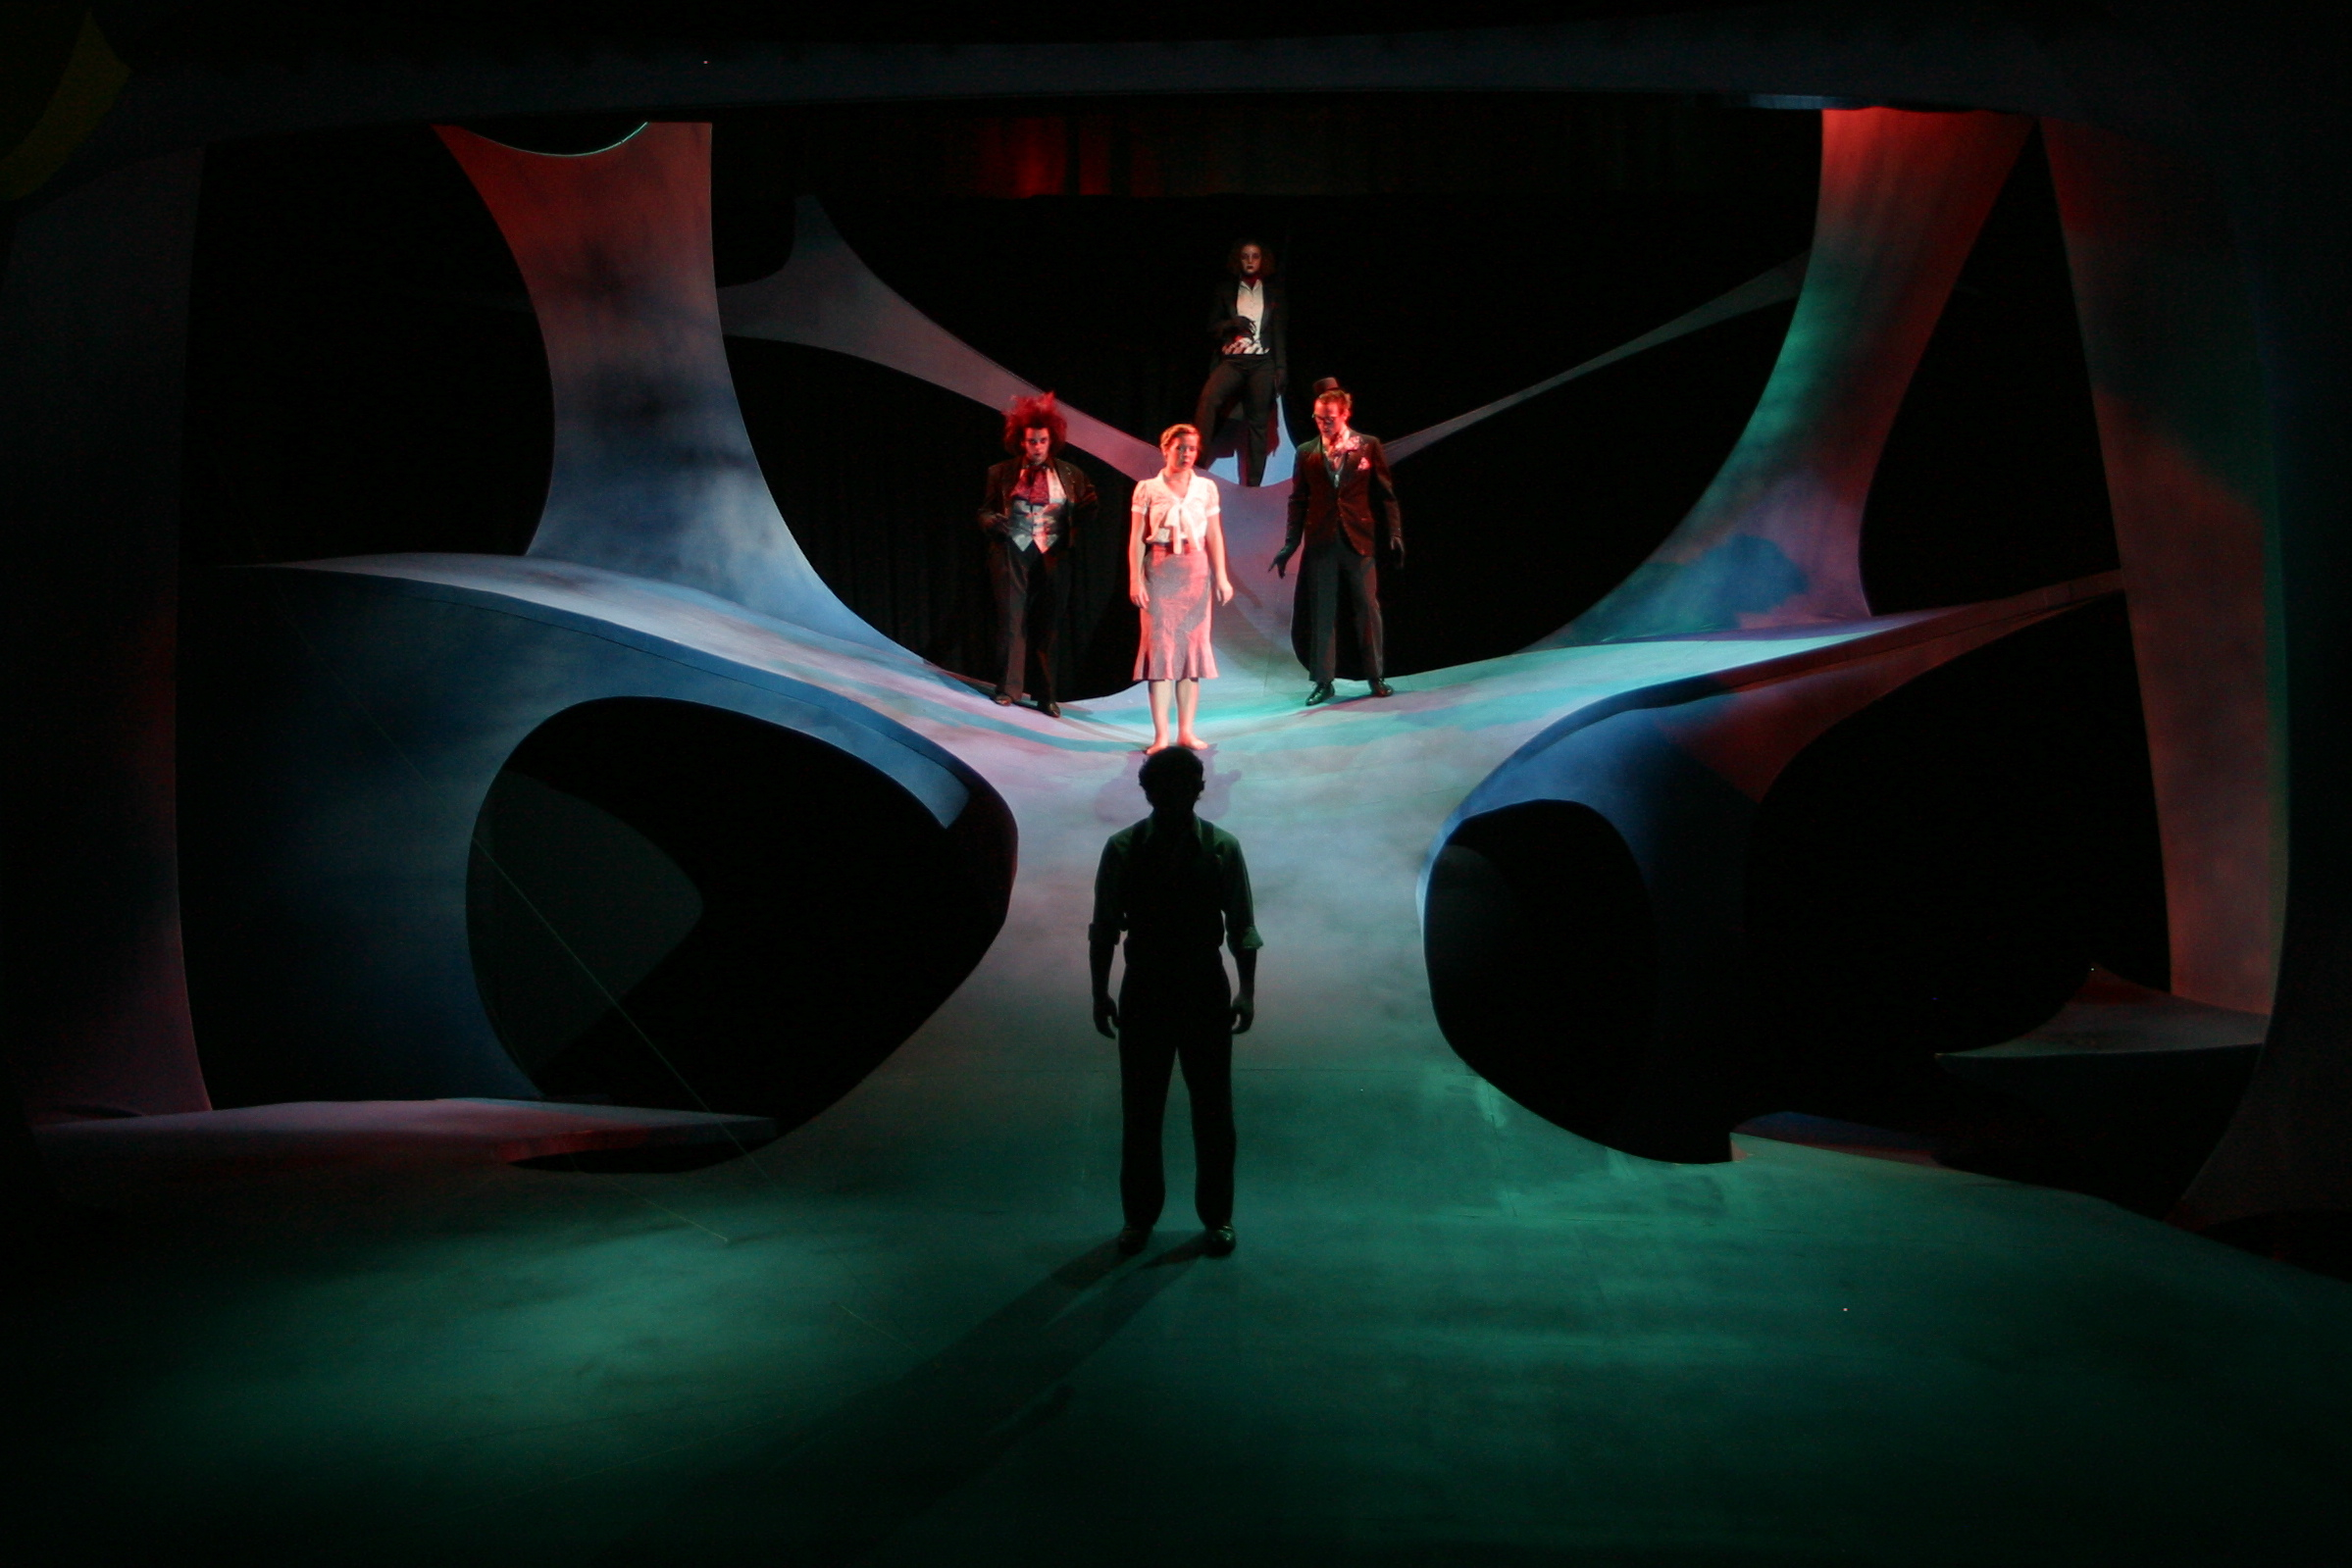 Scenic design by Bryan Boyd; Costume design by Claudie Jean Fisher; Lighting design by Jeremy McCamish. Photo credit: Bryan Boyd.